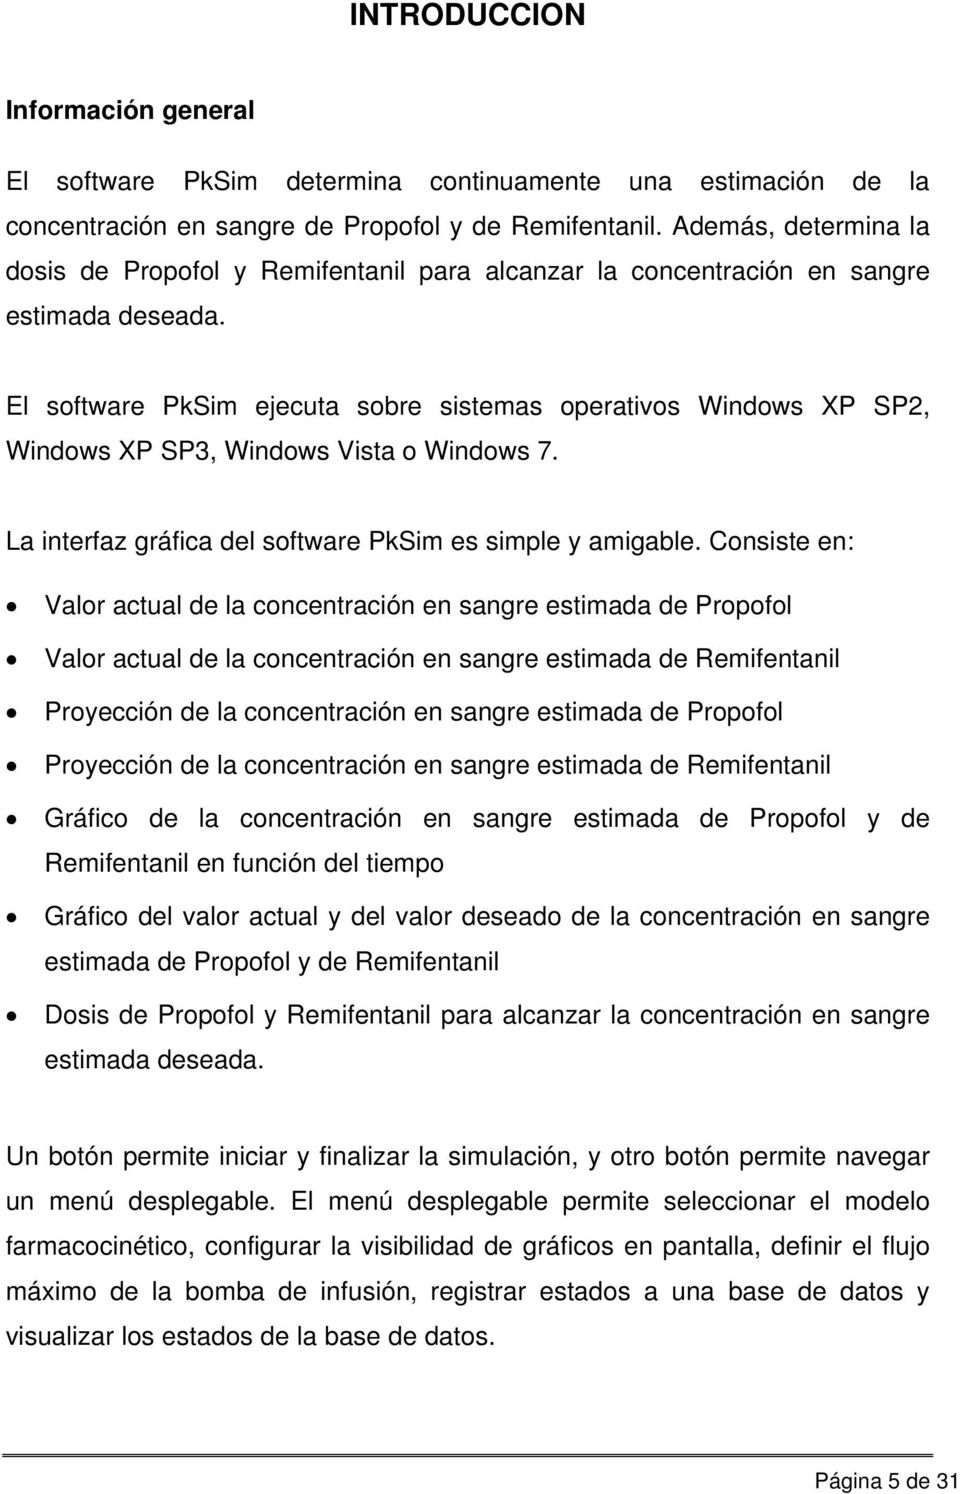 El software PkSim ejecuta sobre sistemas operativos Windows XP SP2, Windows XP SP3, Windows Vista o Windows 7. La interfaz gráfica del software PkSim es simple y amigable.